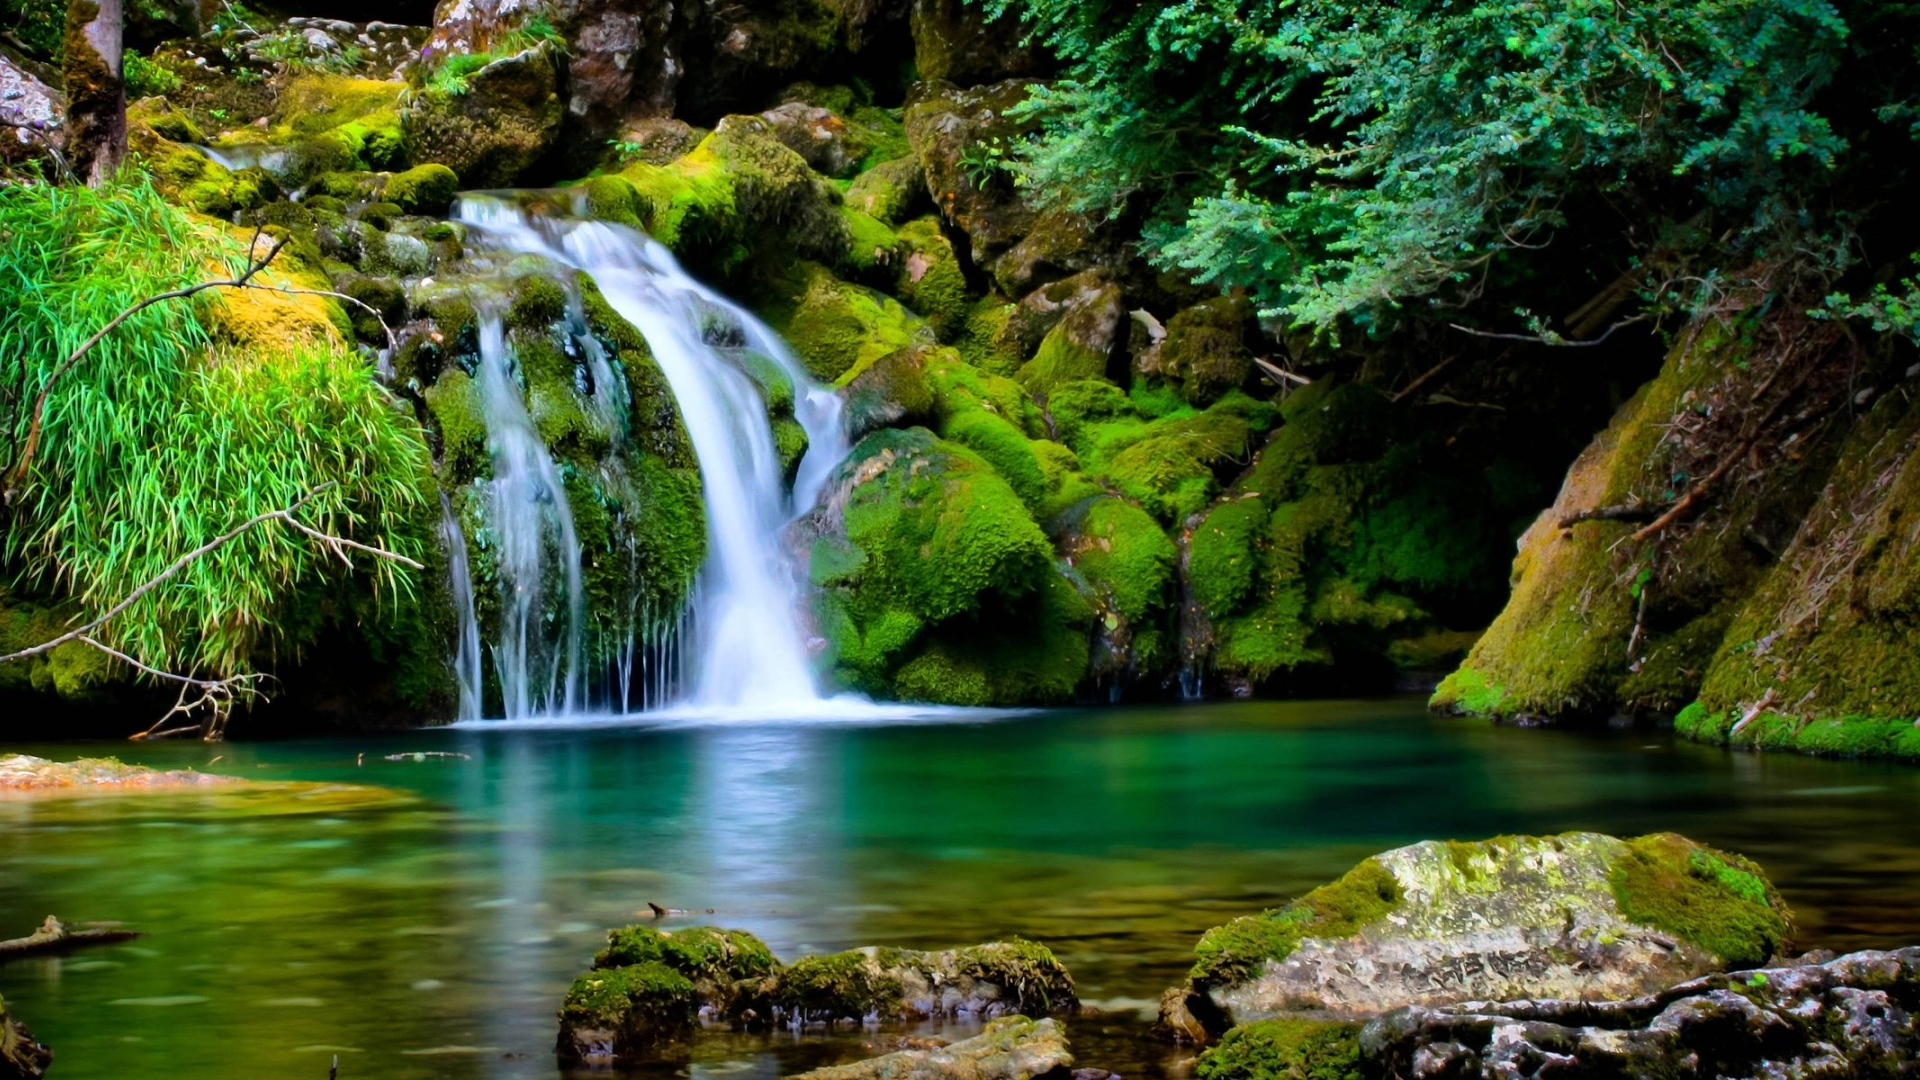 HD Wallpapers Nature Free Download